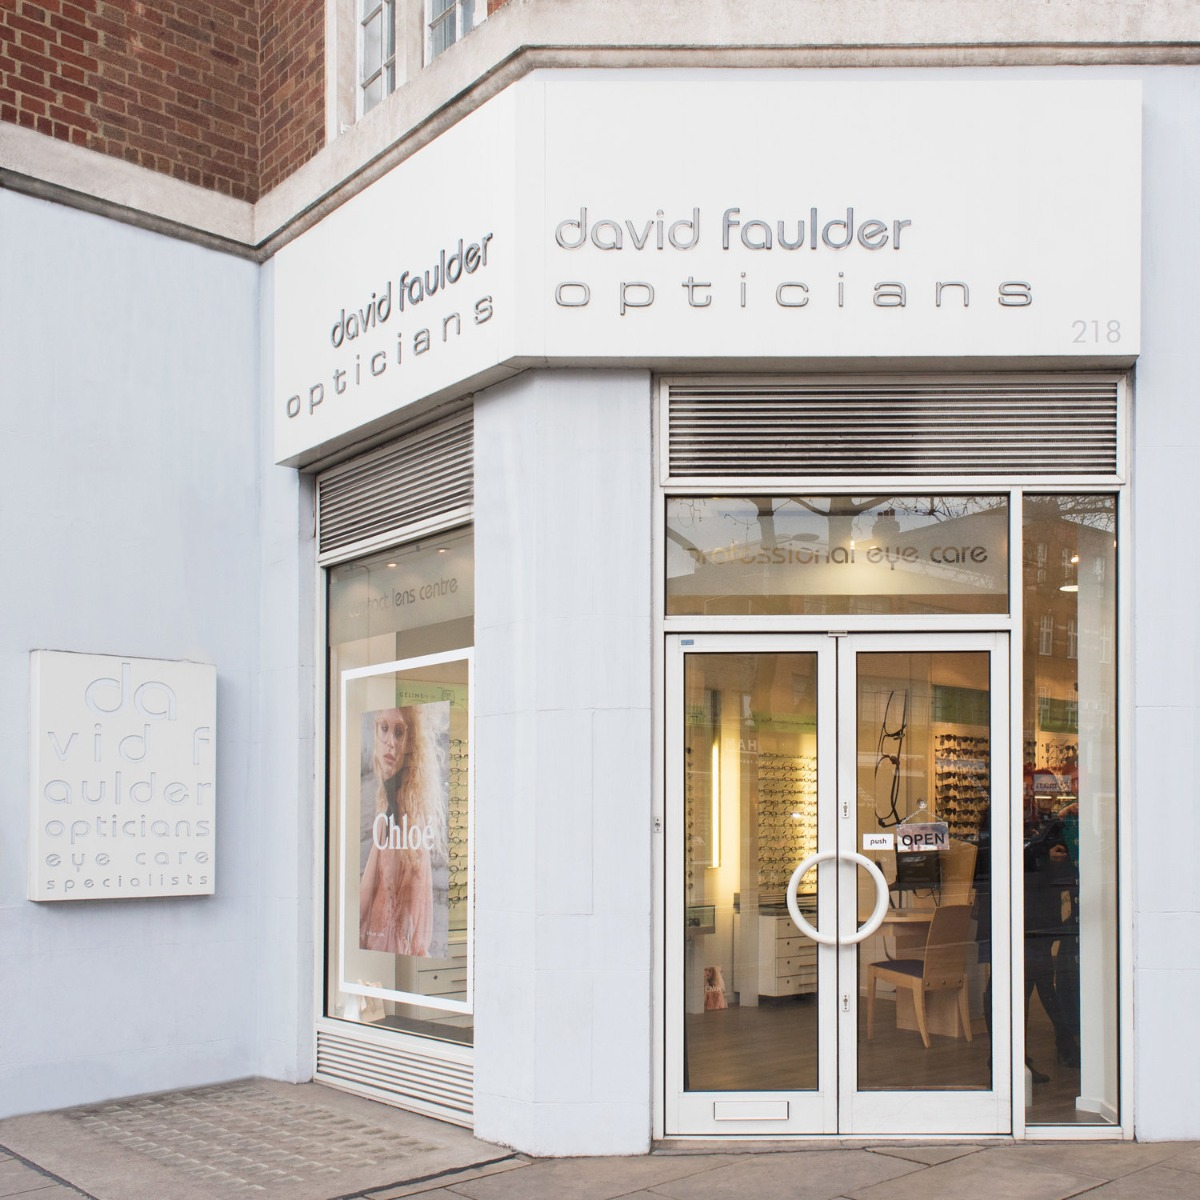 <h4>Contact David Faulder Opticians Kensington</h4> <p>Phone: 020 7937 8790<br>Email: info@davidfaulder.com<br>Address: 218 Kensington High Street London W8 7RG</p> <h4>Opening Hours</h4> <p>Monday to Saturday: 9.30am - 5.30pm<br>Sunday's and Bank Holidays - Closed</p> <h4>Additional Information</h4> <ul> <li>Wheelchair and disabled access</li> <li>A short walk from Kensington High Street Tube Station</li> </ul>